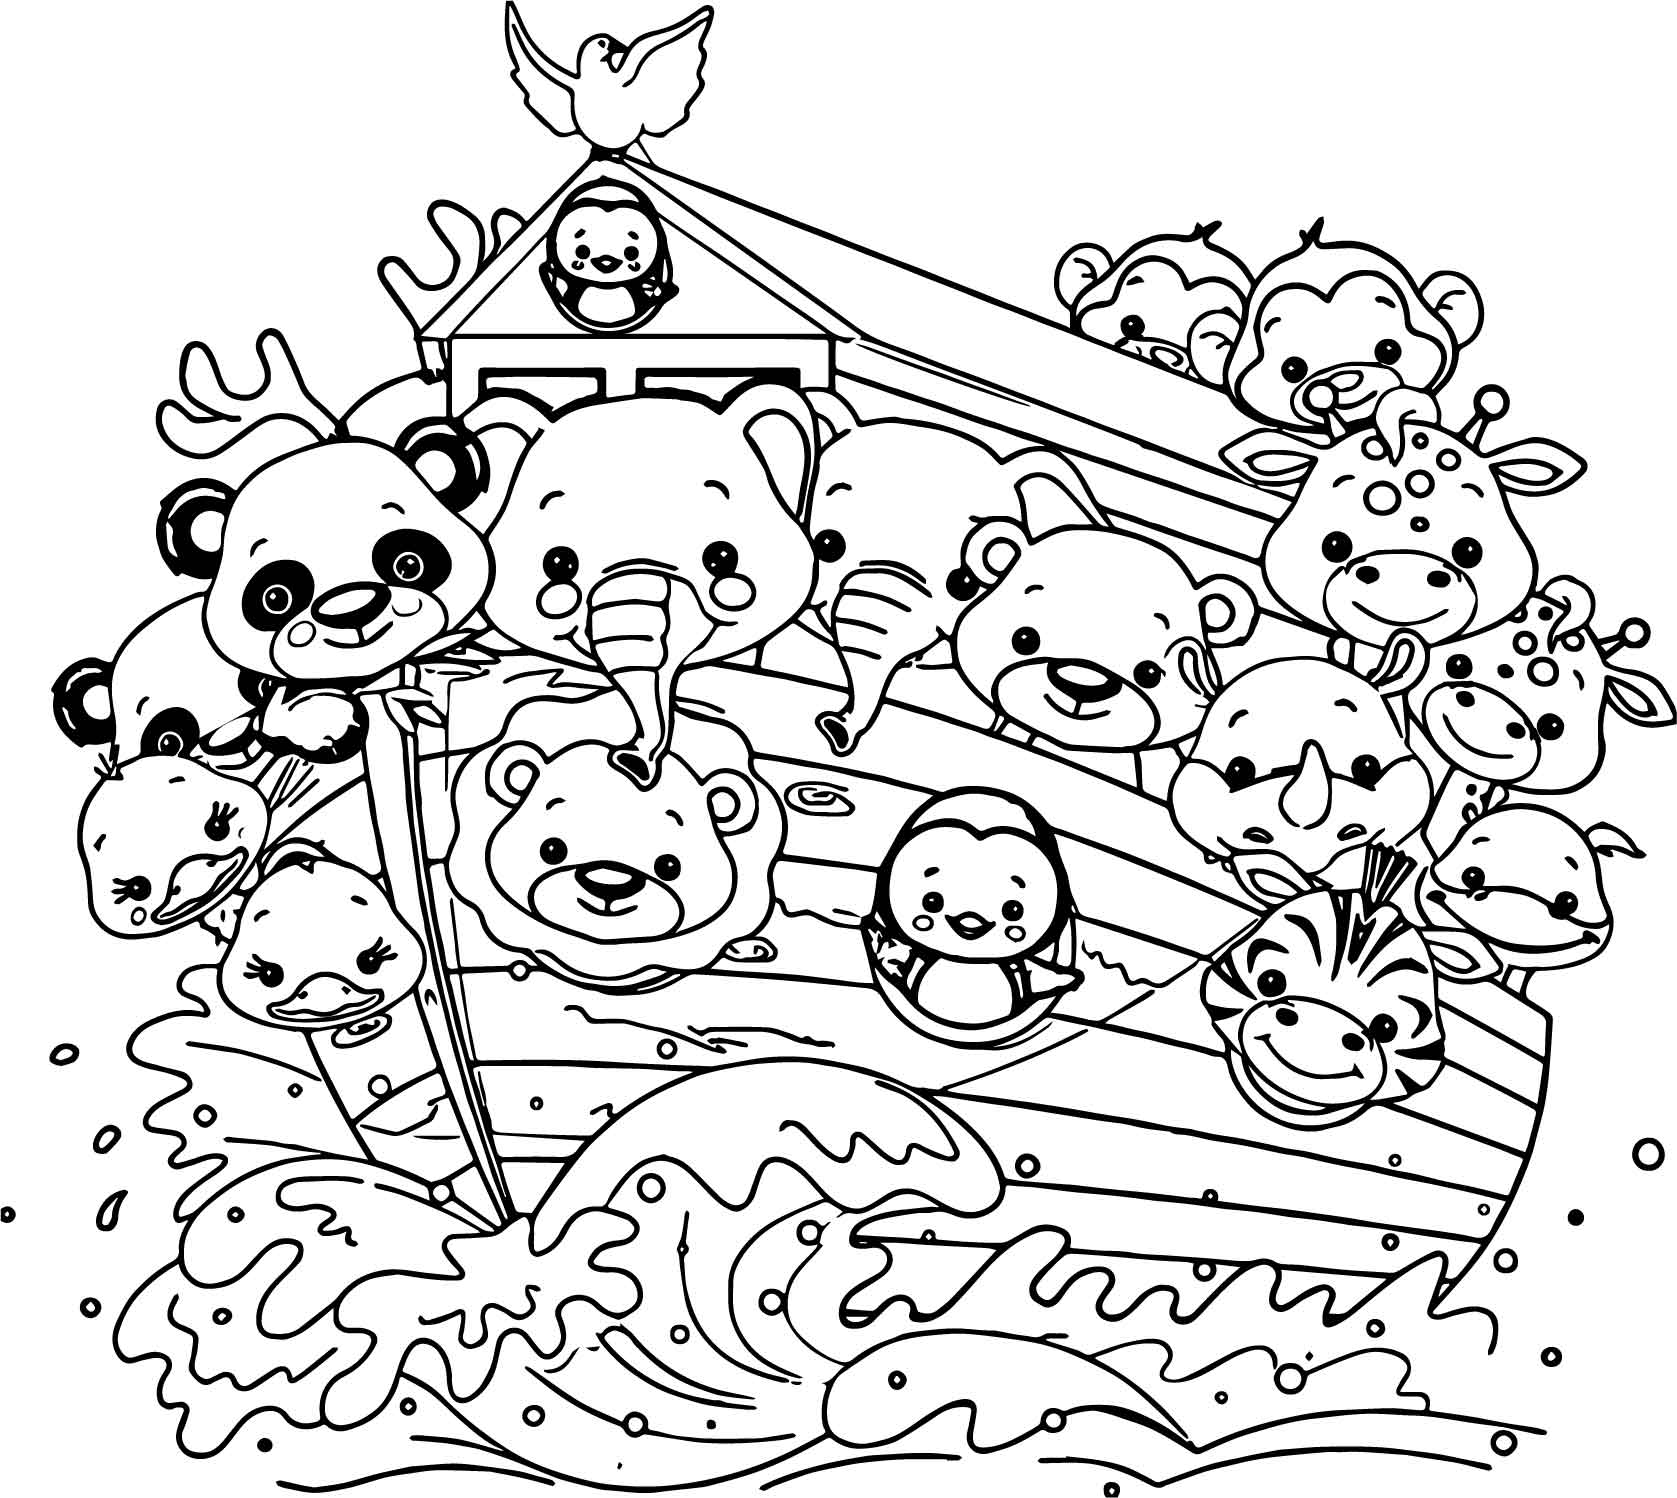 noah ship cartoon coloring page wecoloringpage